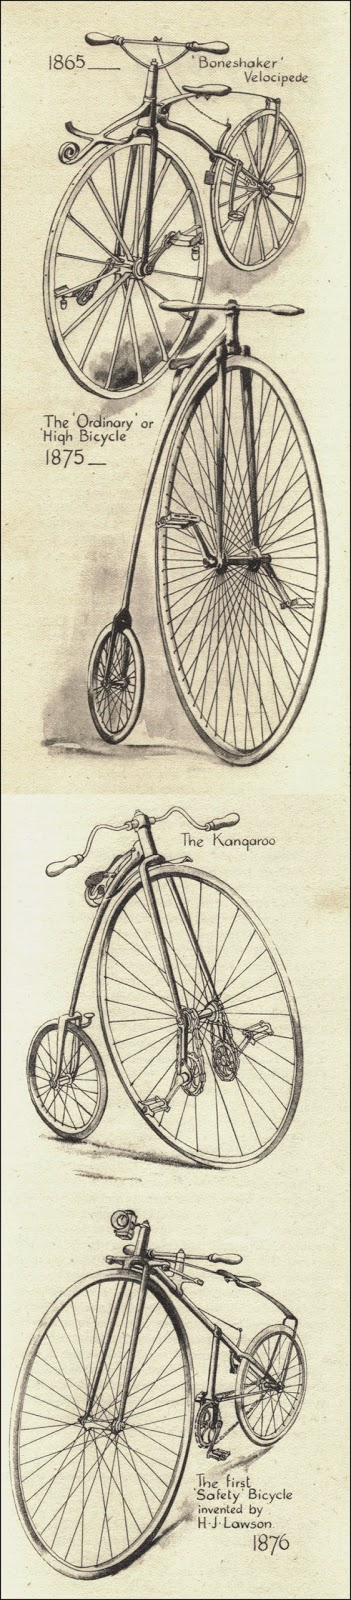 Bicycle designs 1865 to 1876